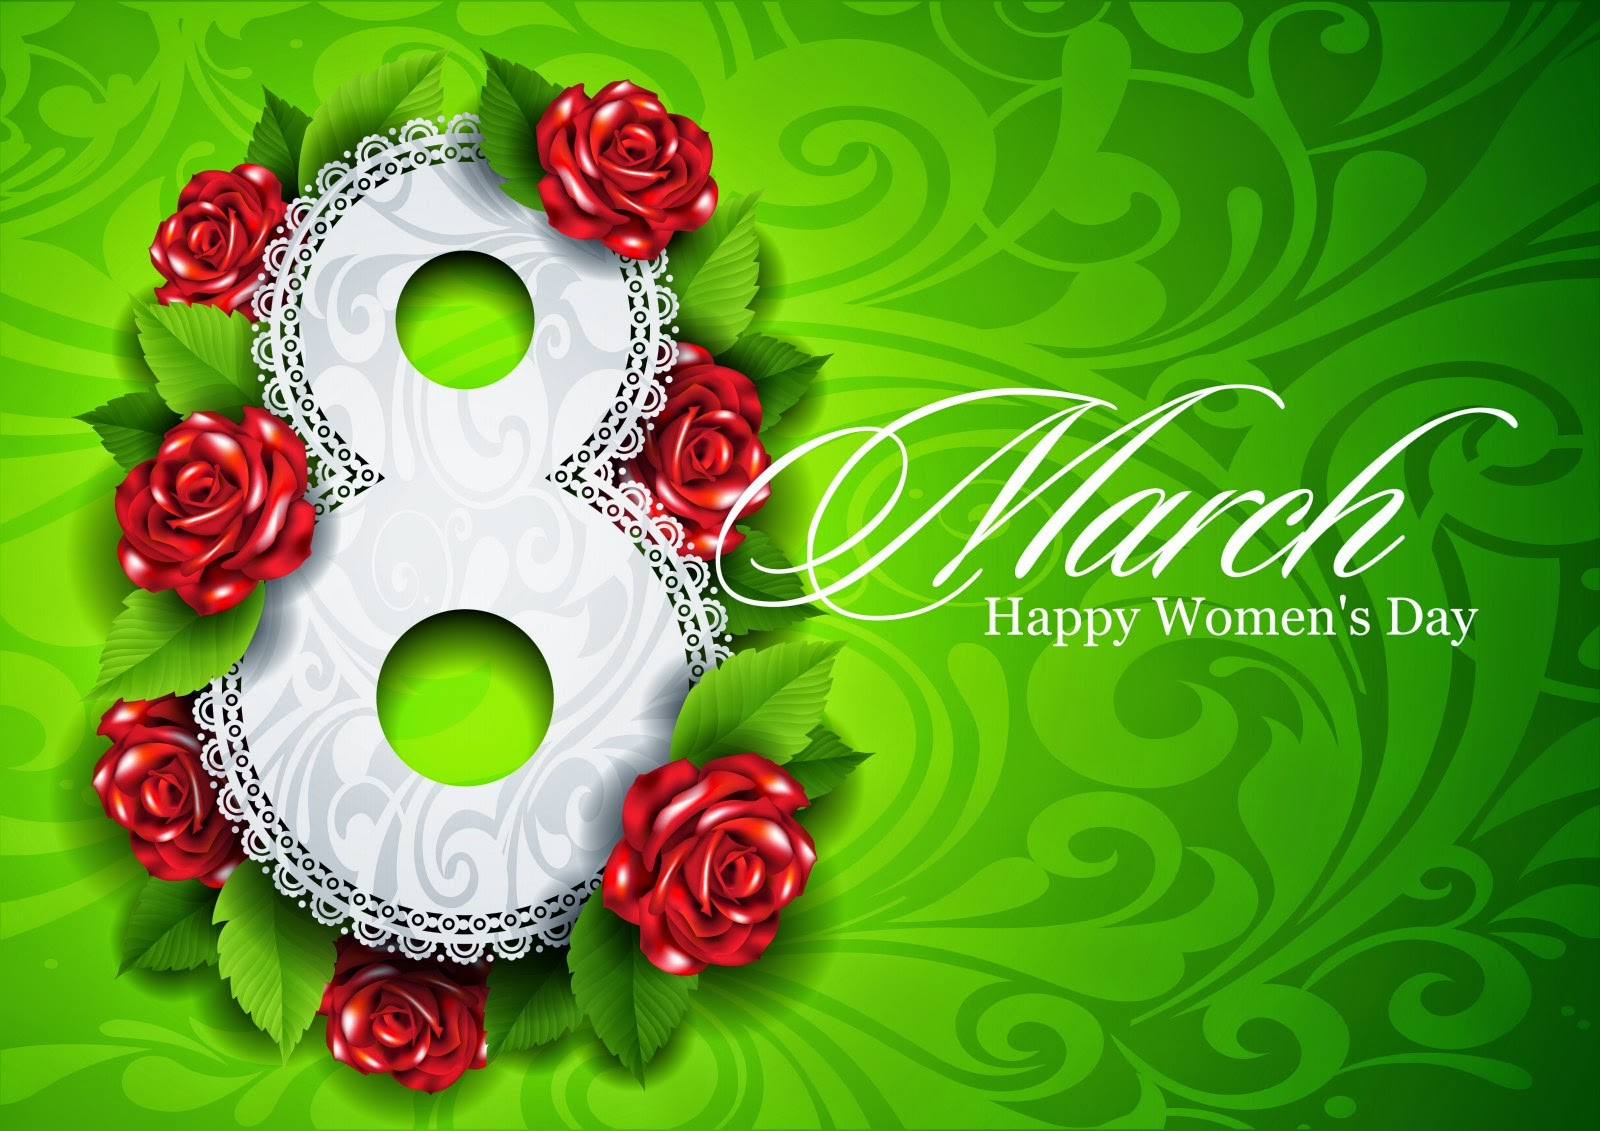 8%2BMarch%2BHappy%2BWomens%2BDay%2Bwallp